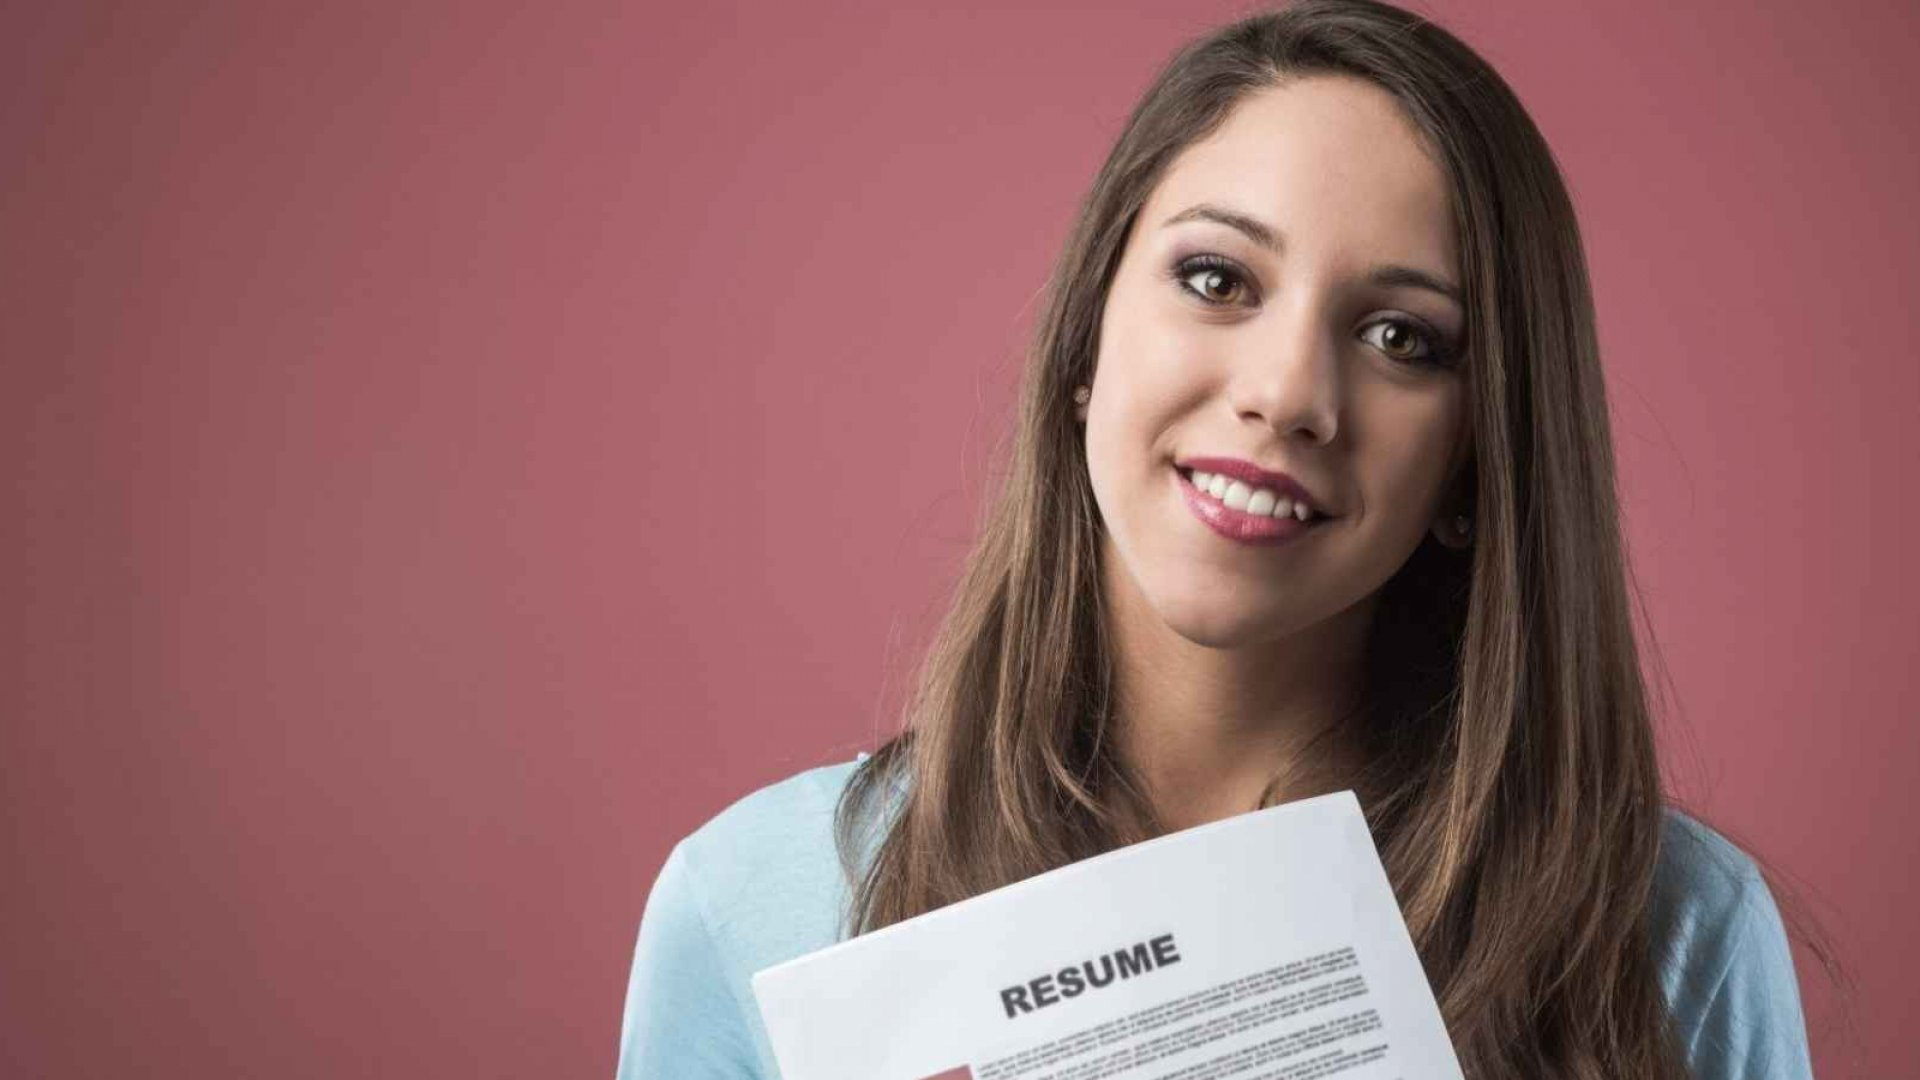 Don't Make This One Huge Mistake on Your Resume